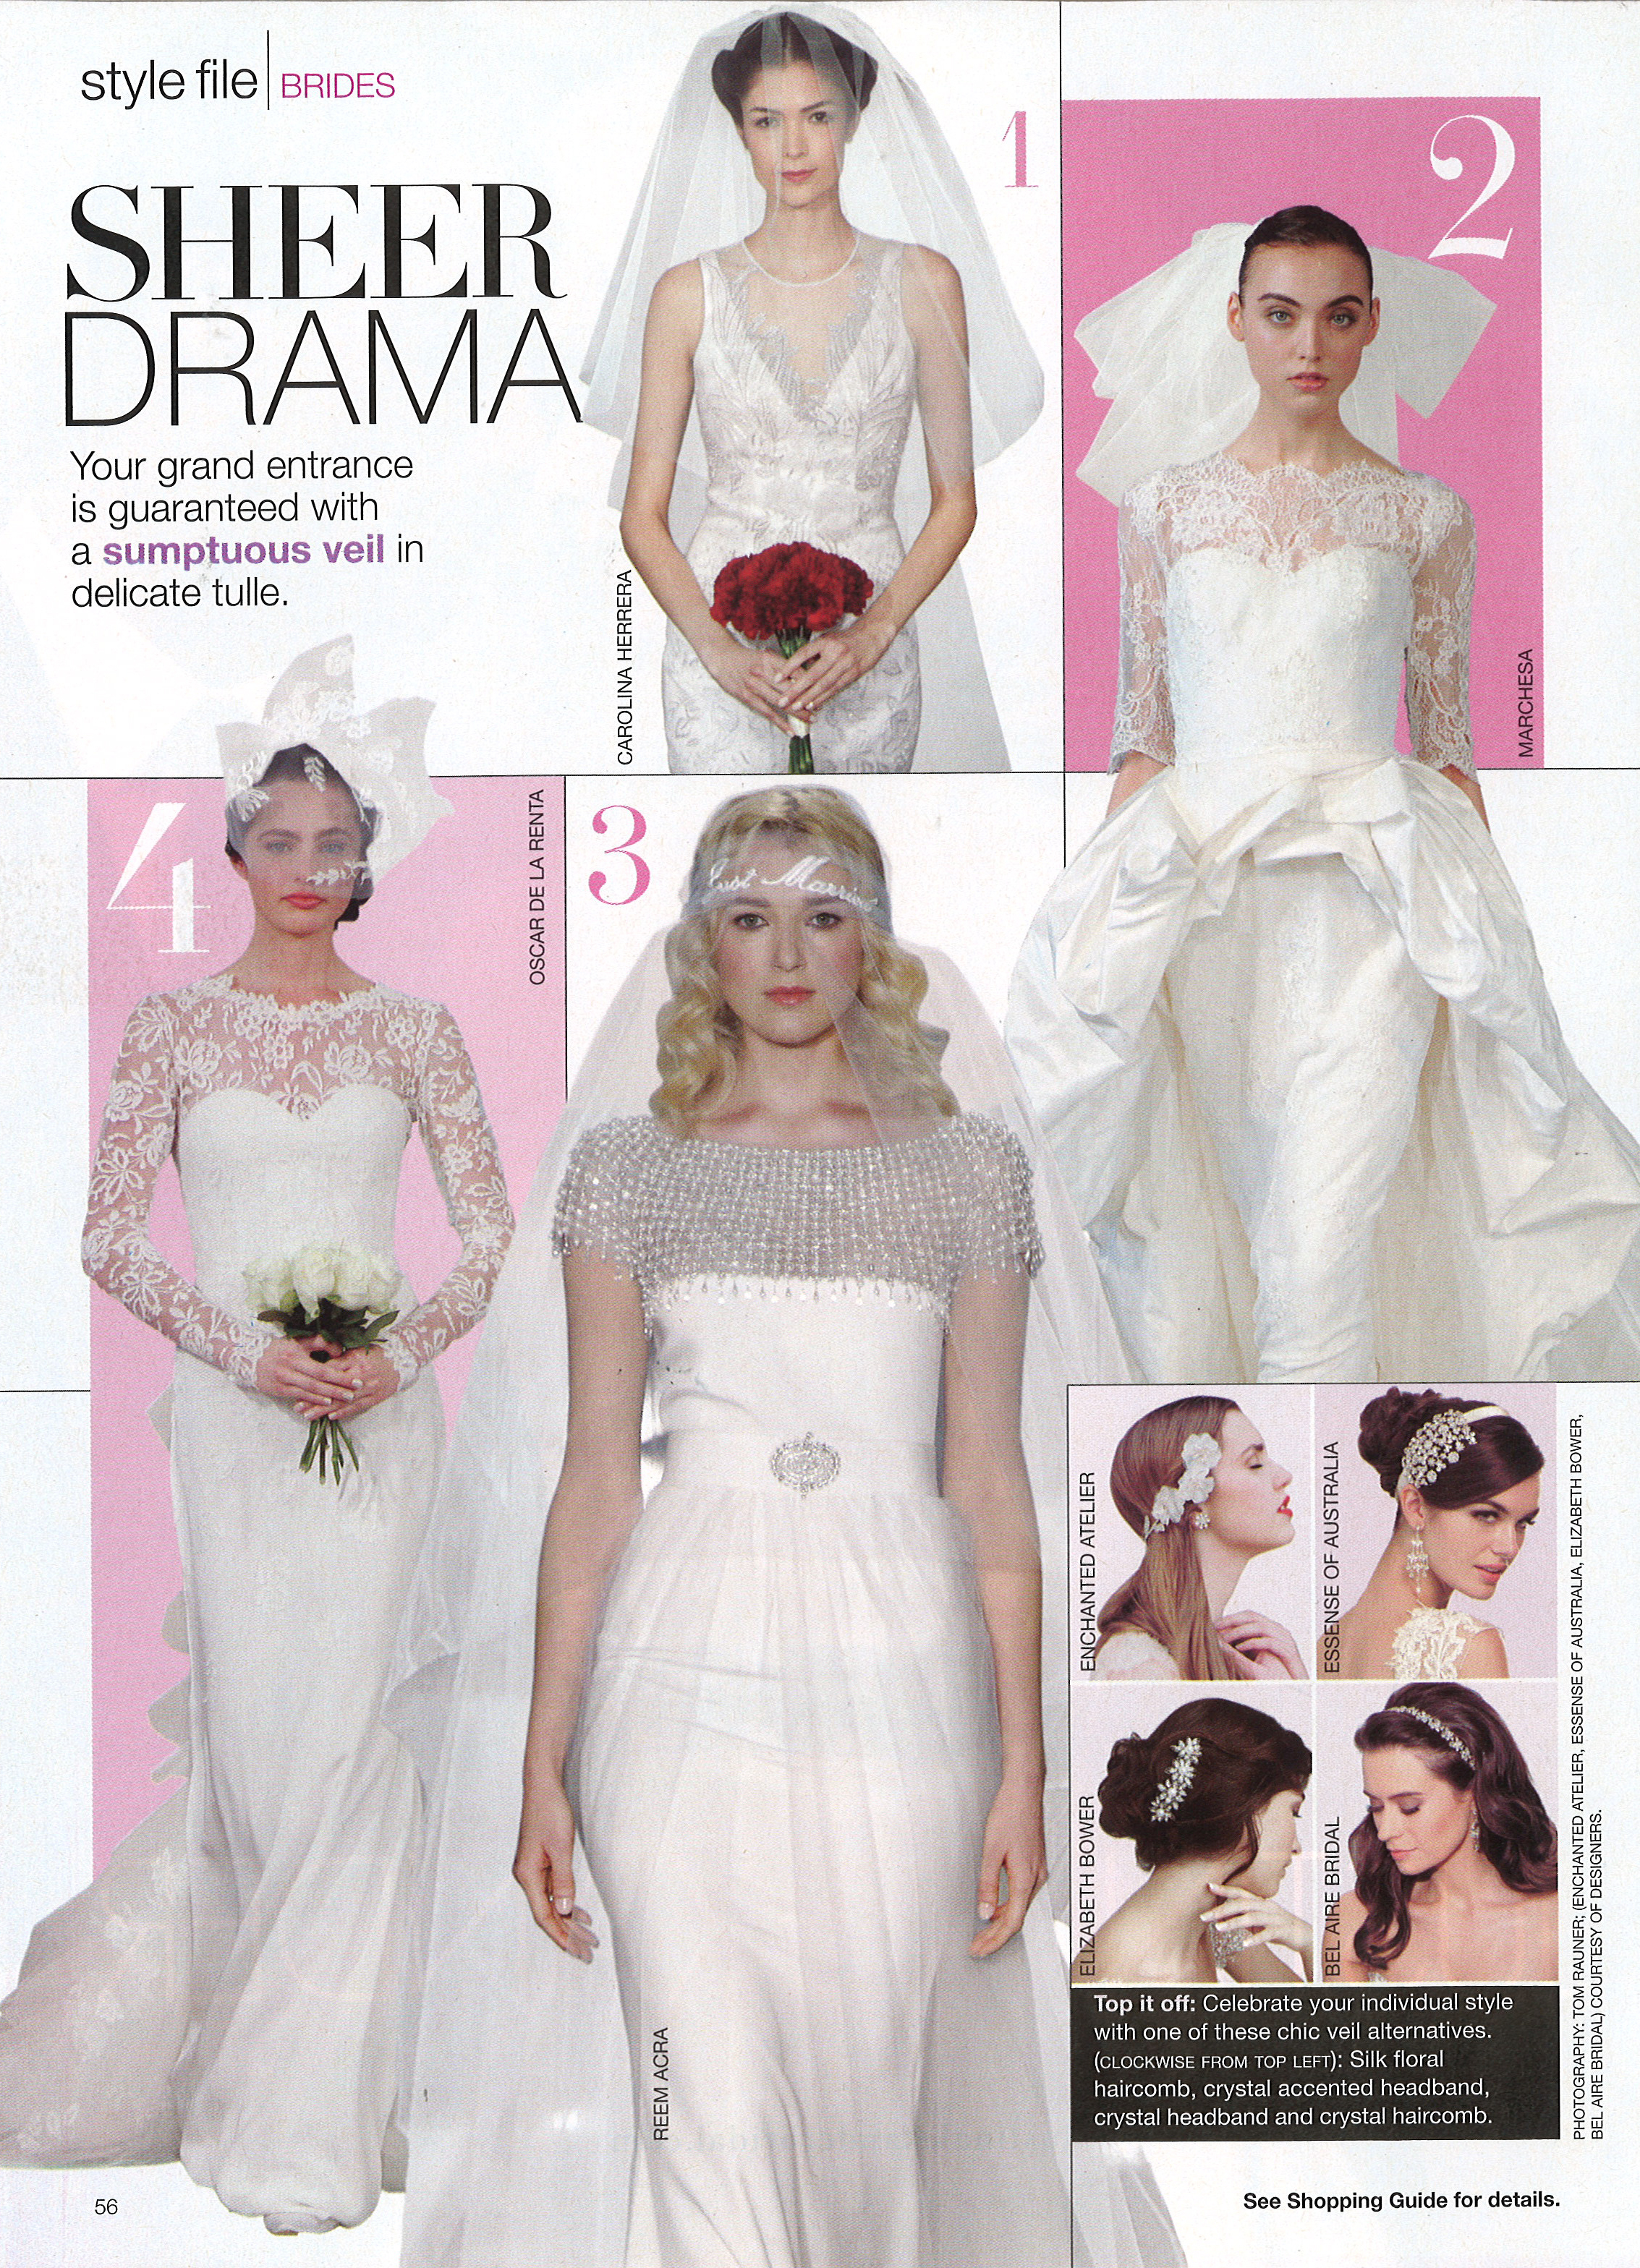 5-Bridal Guide September October 2013 Page 56-1.jpg